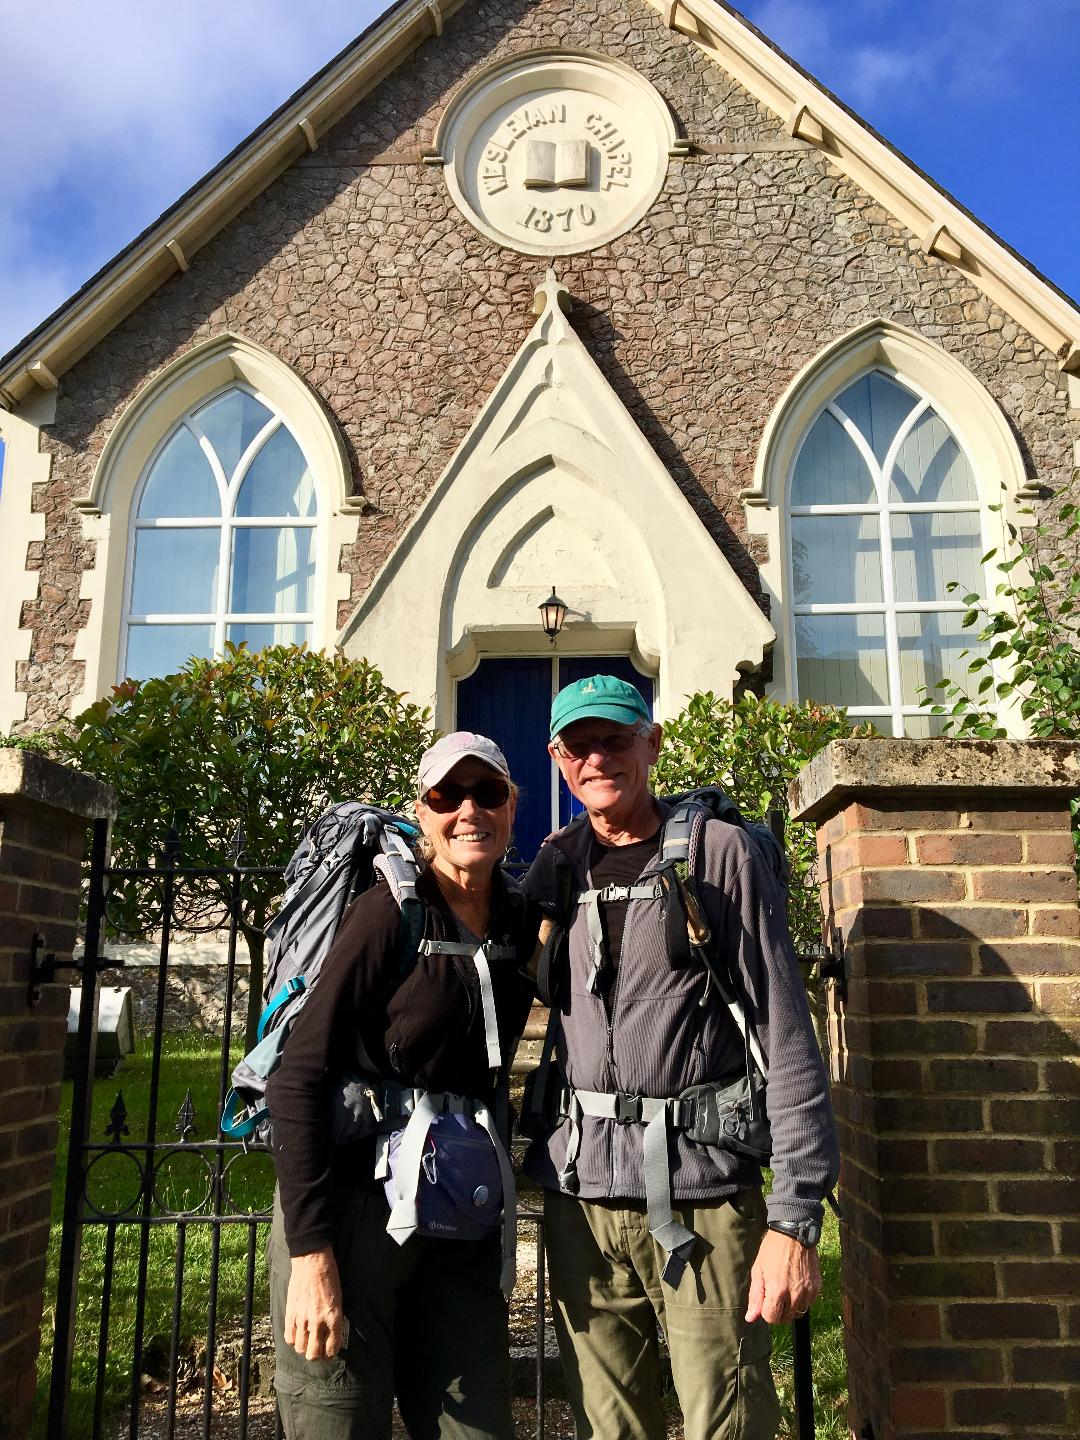 Our host, Joe, fed us a great breakfast then made us fruit smoothies for extra energy to tackle our last day on the Via Francigena. Here we are pictured in front of an 1870 converted Wesleyan Chapel, our digs for our last night on the path. Photo credit: Joe Flavin